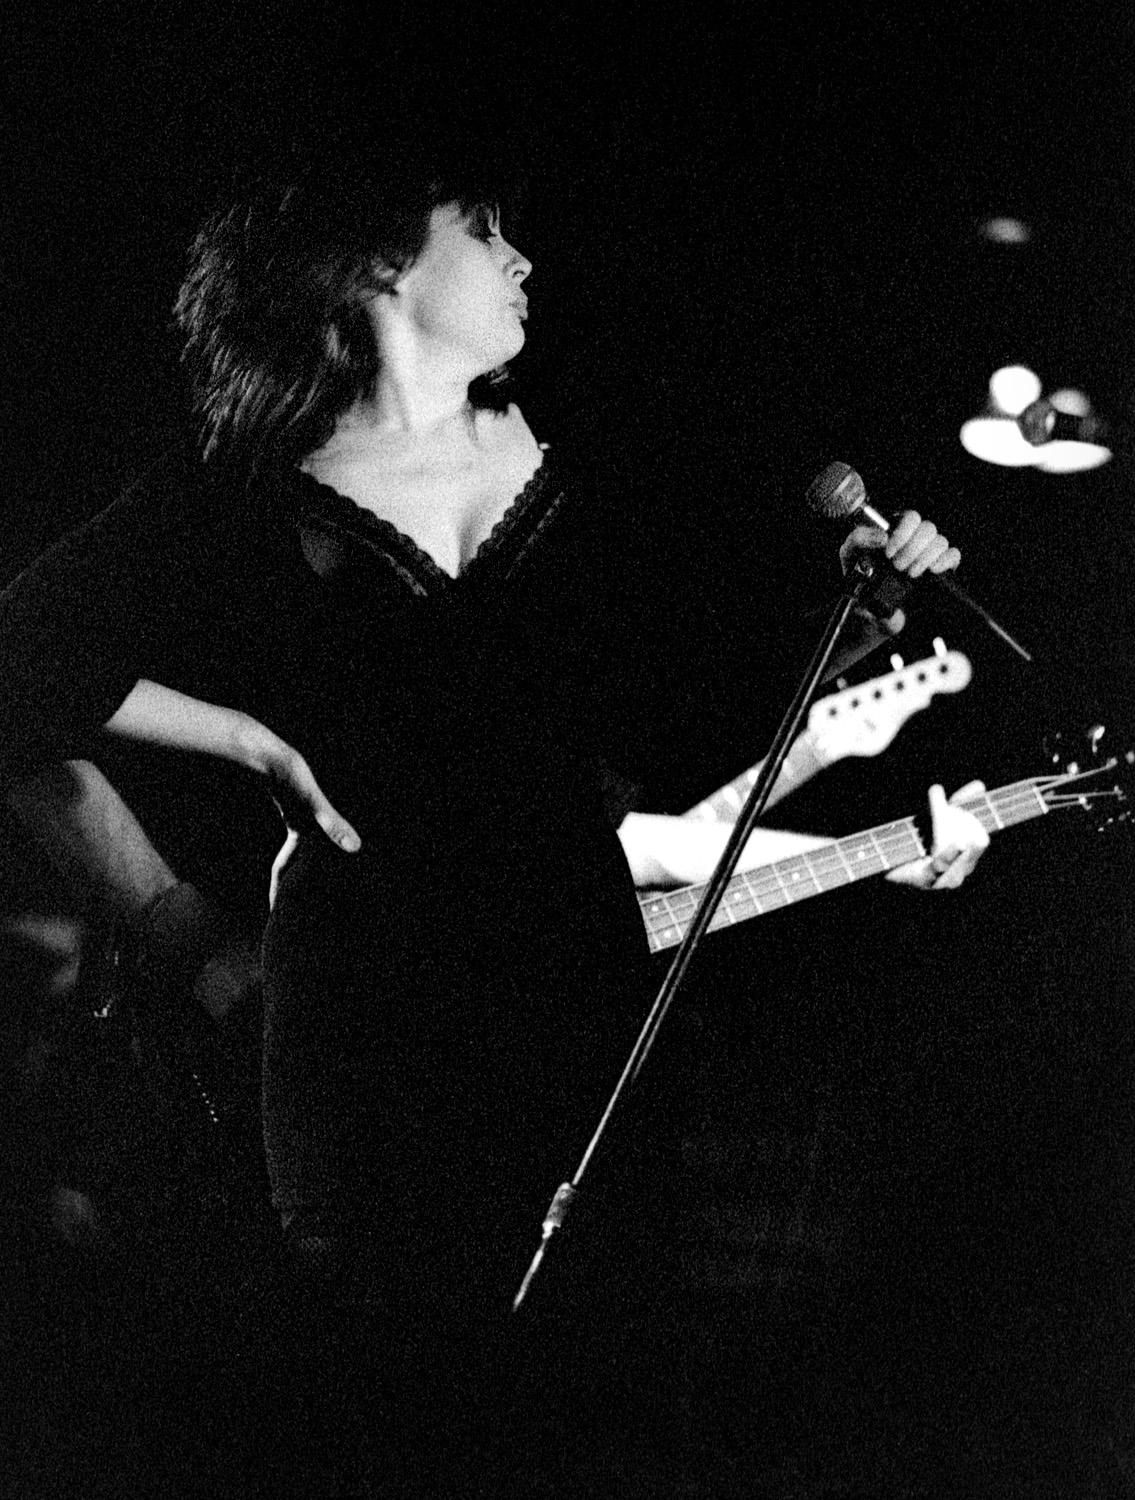 The late Chrissy Amphlett, of Divinyls.